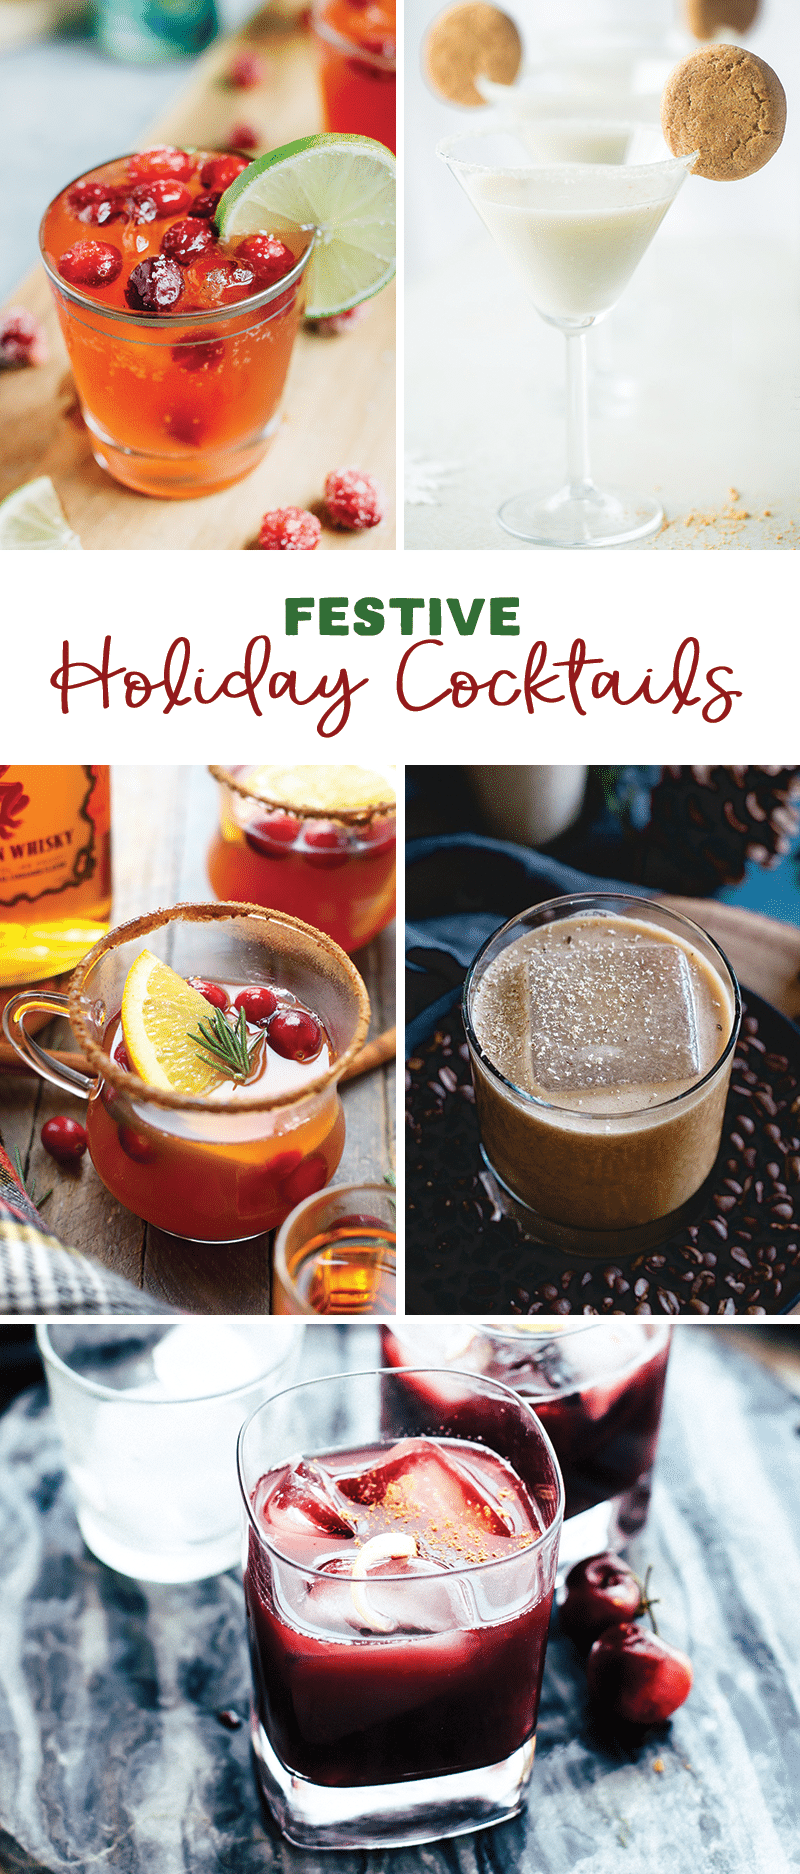 5 Holiday Festive Cocktails that are healthier and fun!